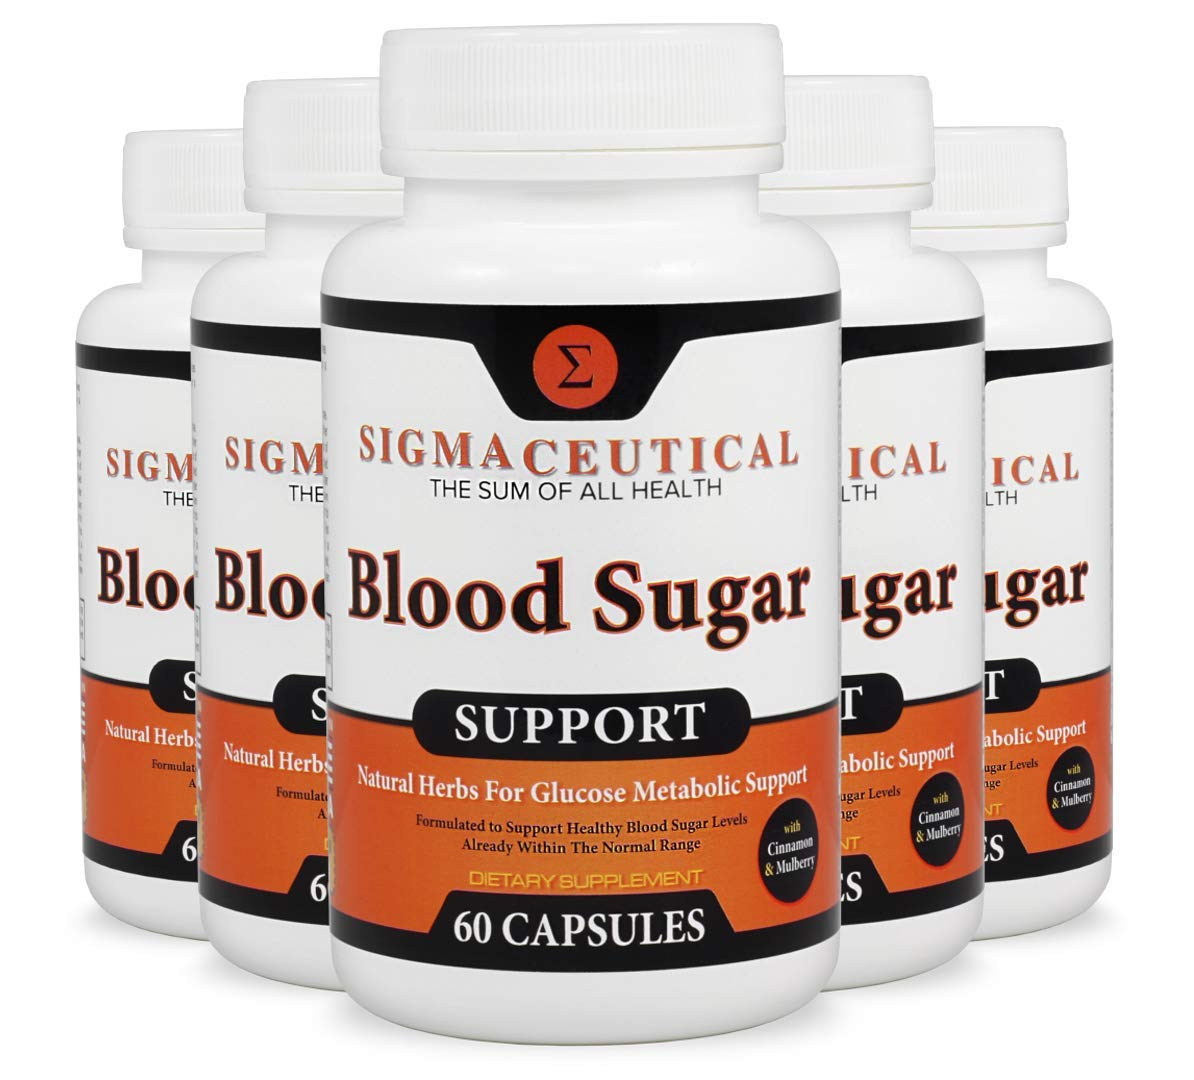 5 Pack of Blood Sugar Support Supplement - Normal Blood Glucose Control - Vitamin and Herb Extract Formula w/Guggul, Mulberry Extract, Vanadium & Gymnema Sylvestre - 60 Capsules Each